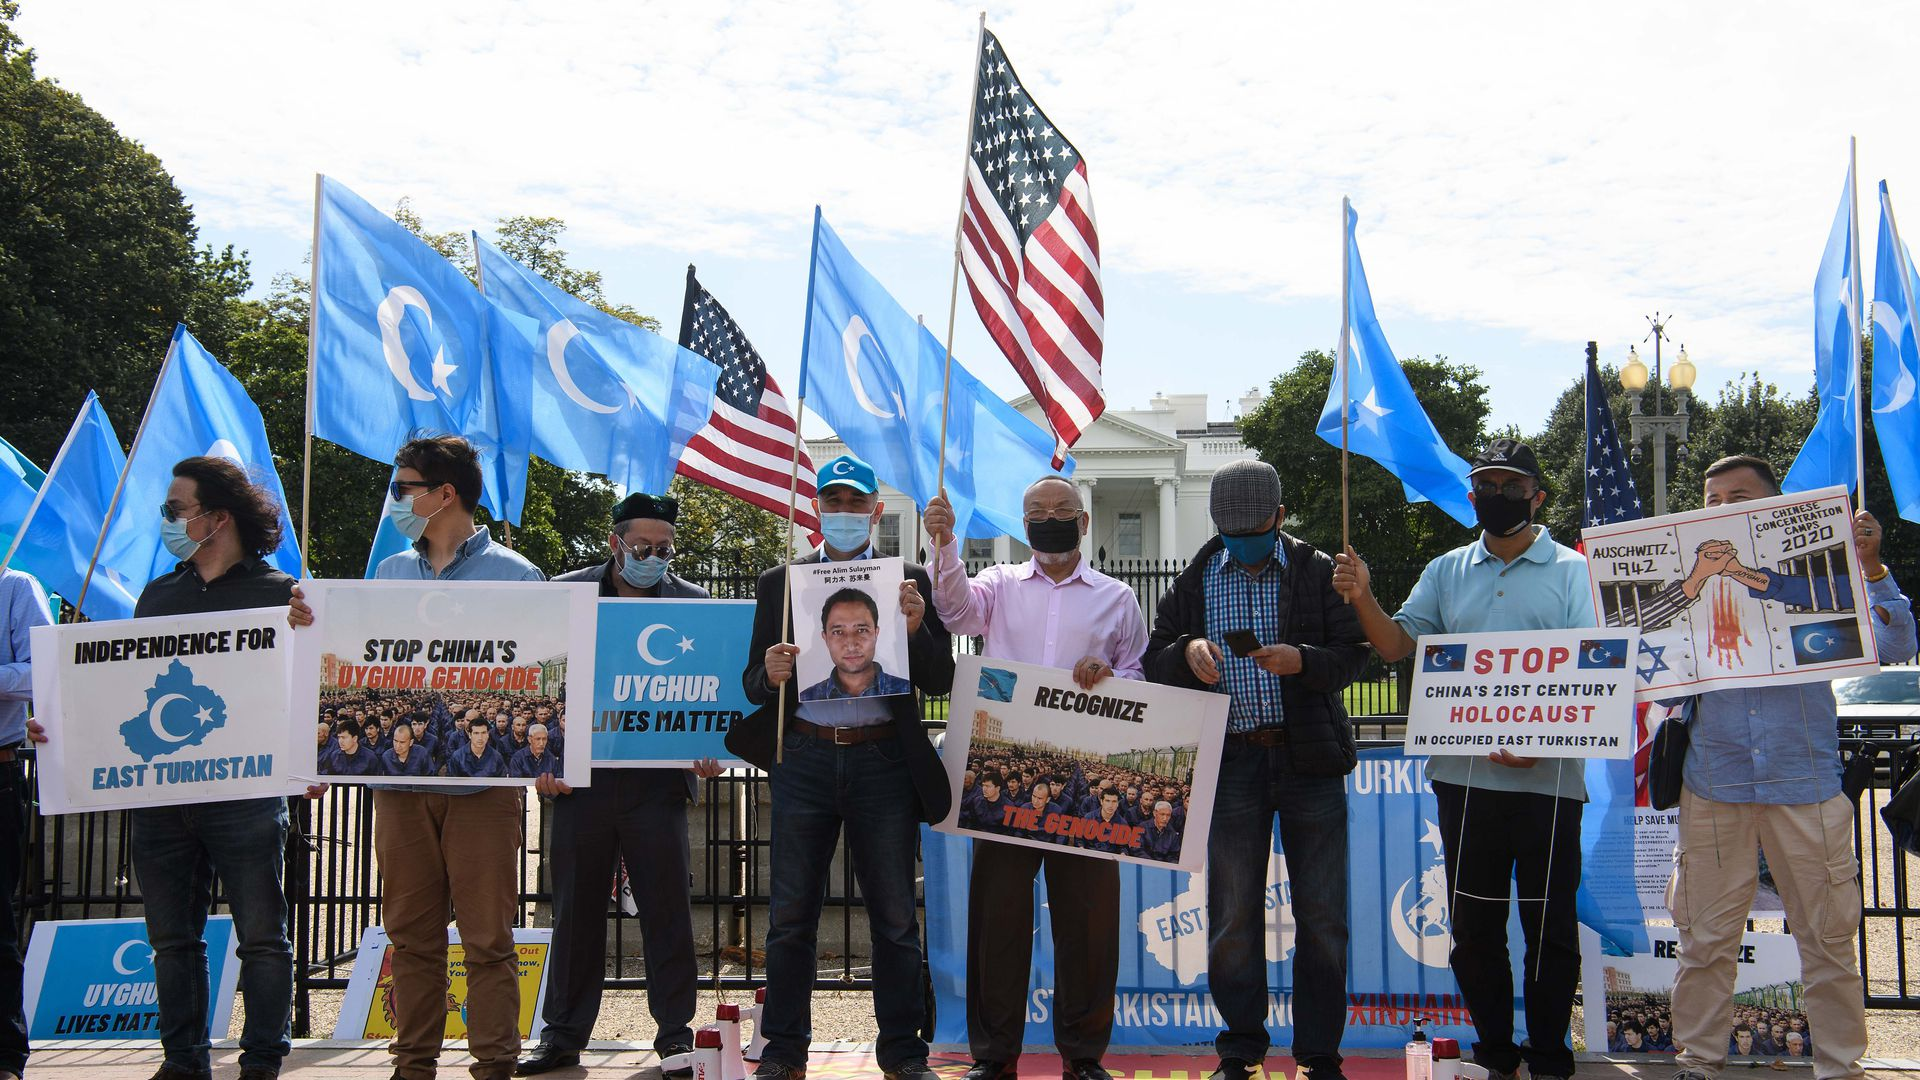 Lawmakers form bipartisan caucus to confront China on Uyghur treatment -  Axios